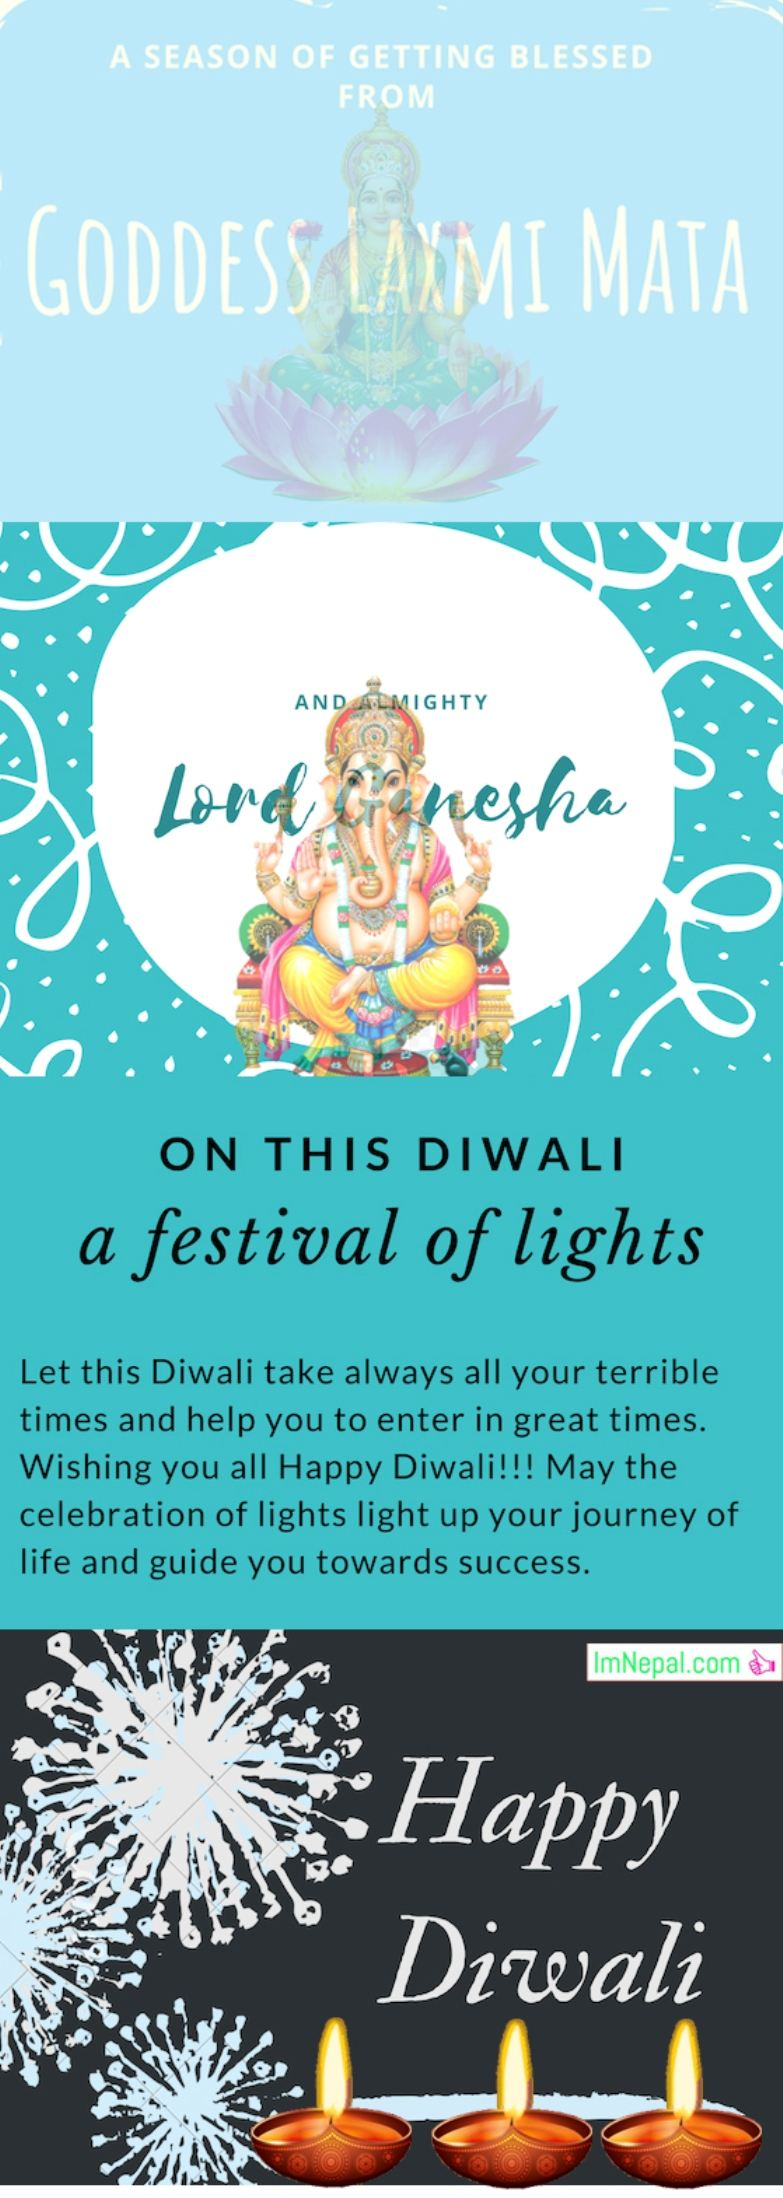 happy diwali wishes messages greeting cards wallpapers images dipawali deepavali photos